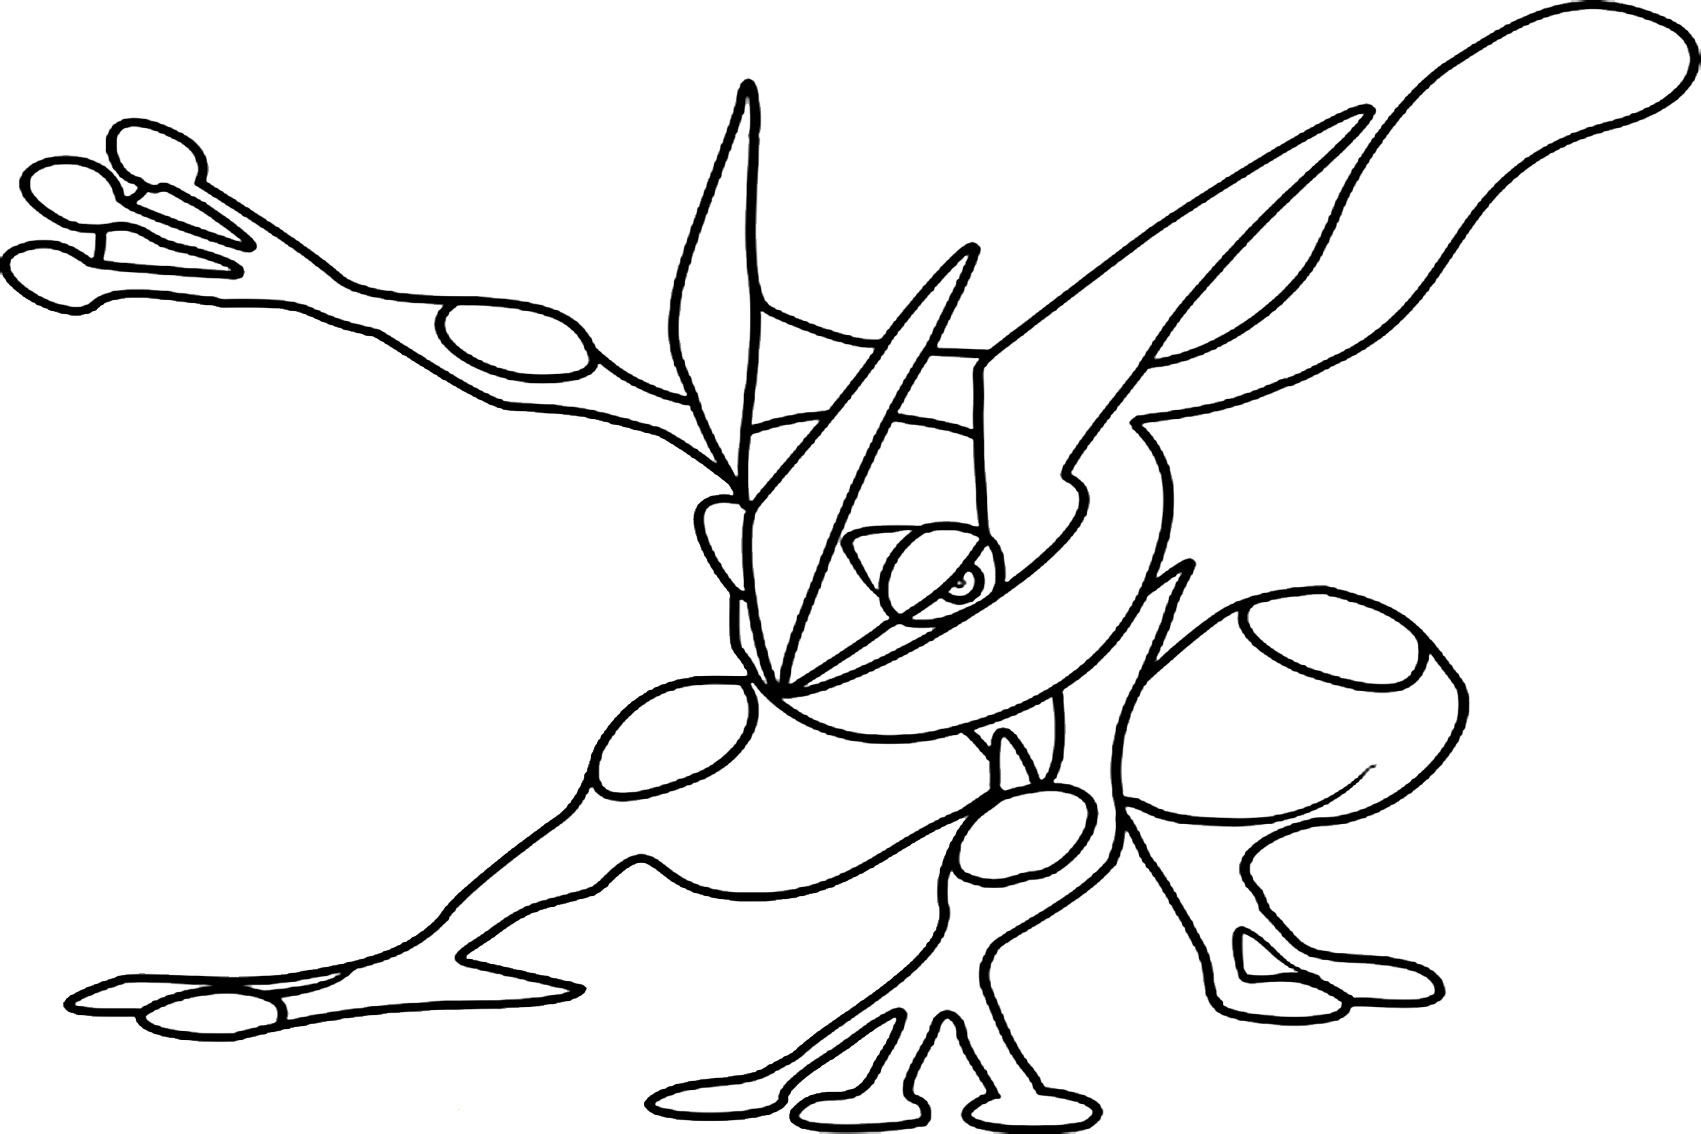 pokemon kingdra coloring pages ash greninja coloring page funsoke pages coloring kingdra pokemon